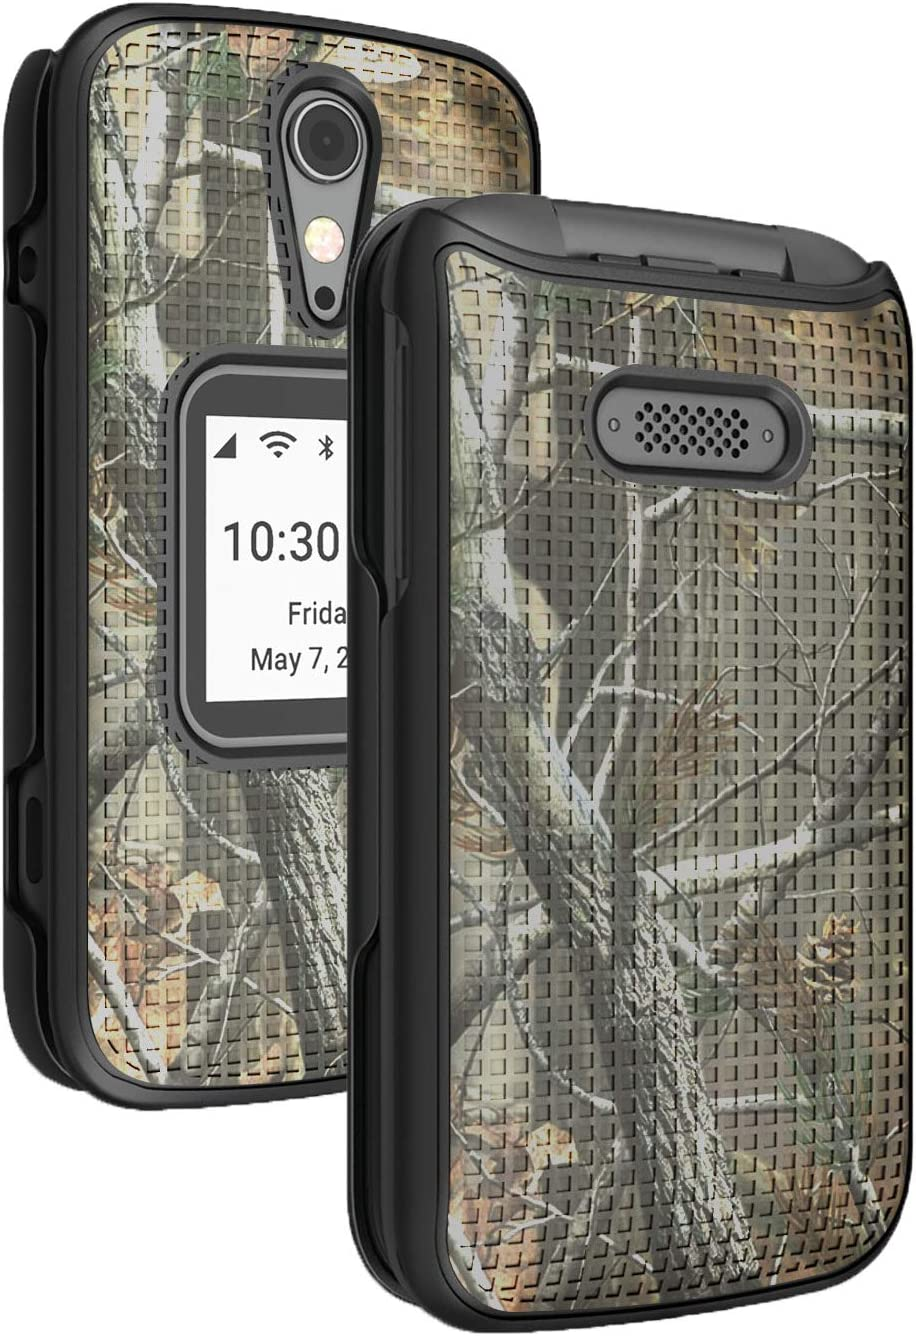 Case for Jitterbug Flip2, Nakedcellphone [Outdoor Camouflage] Tree Leaf Real Woods Camo Protective Hard Shell Cover for Jitterbug Flip 2 Phone (aka Lively Flip) (4053SJ7)